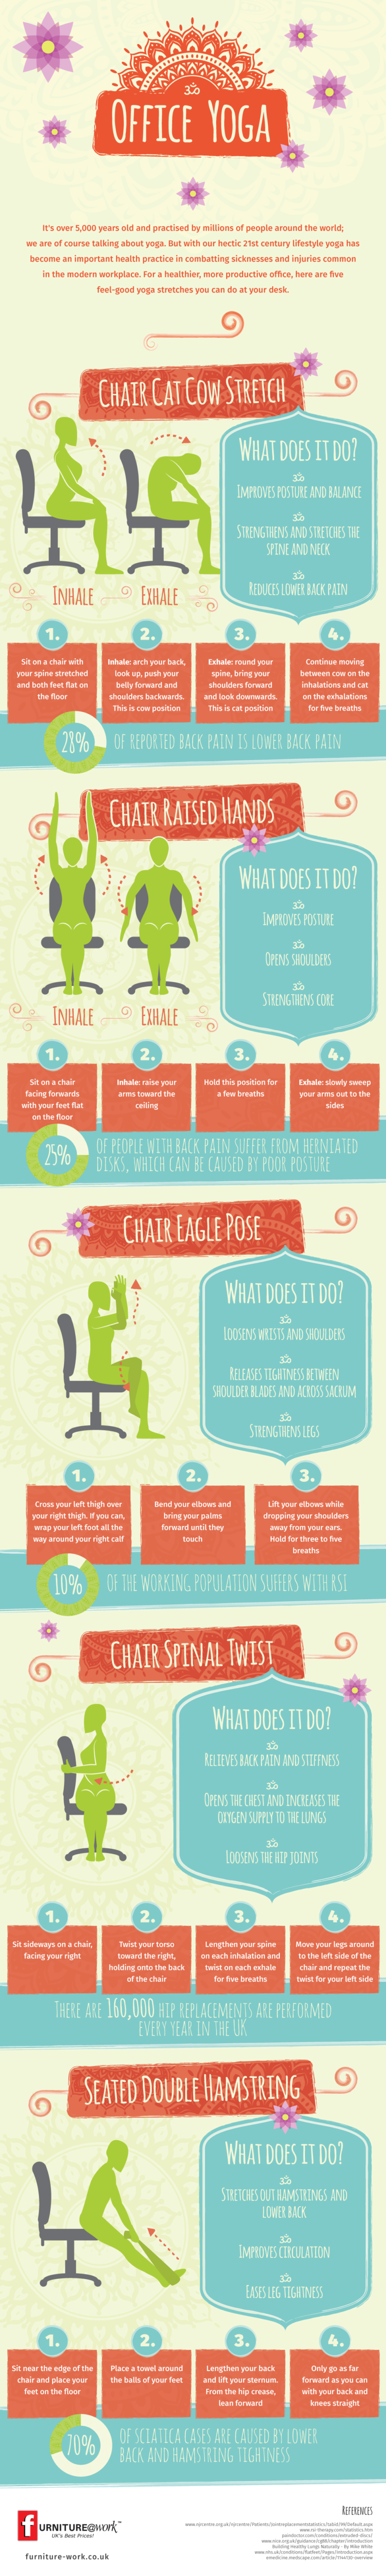 image - officeyoga infographic with poses